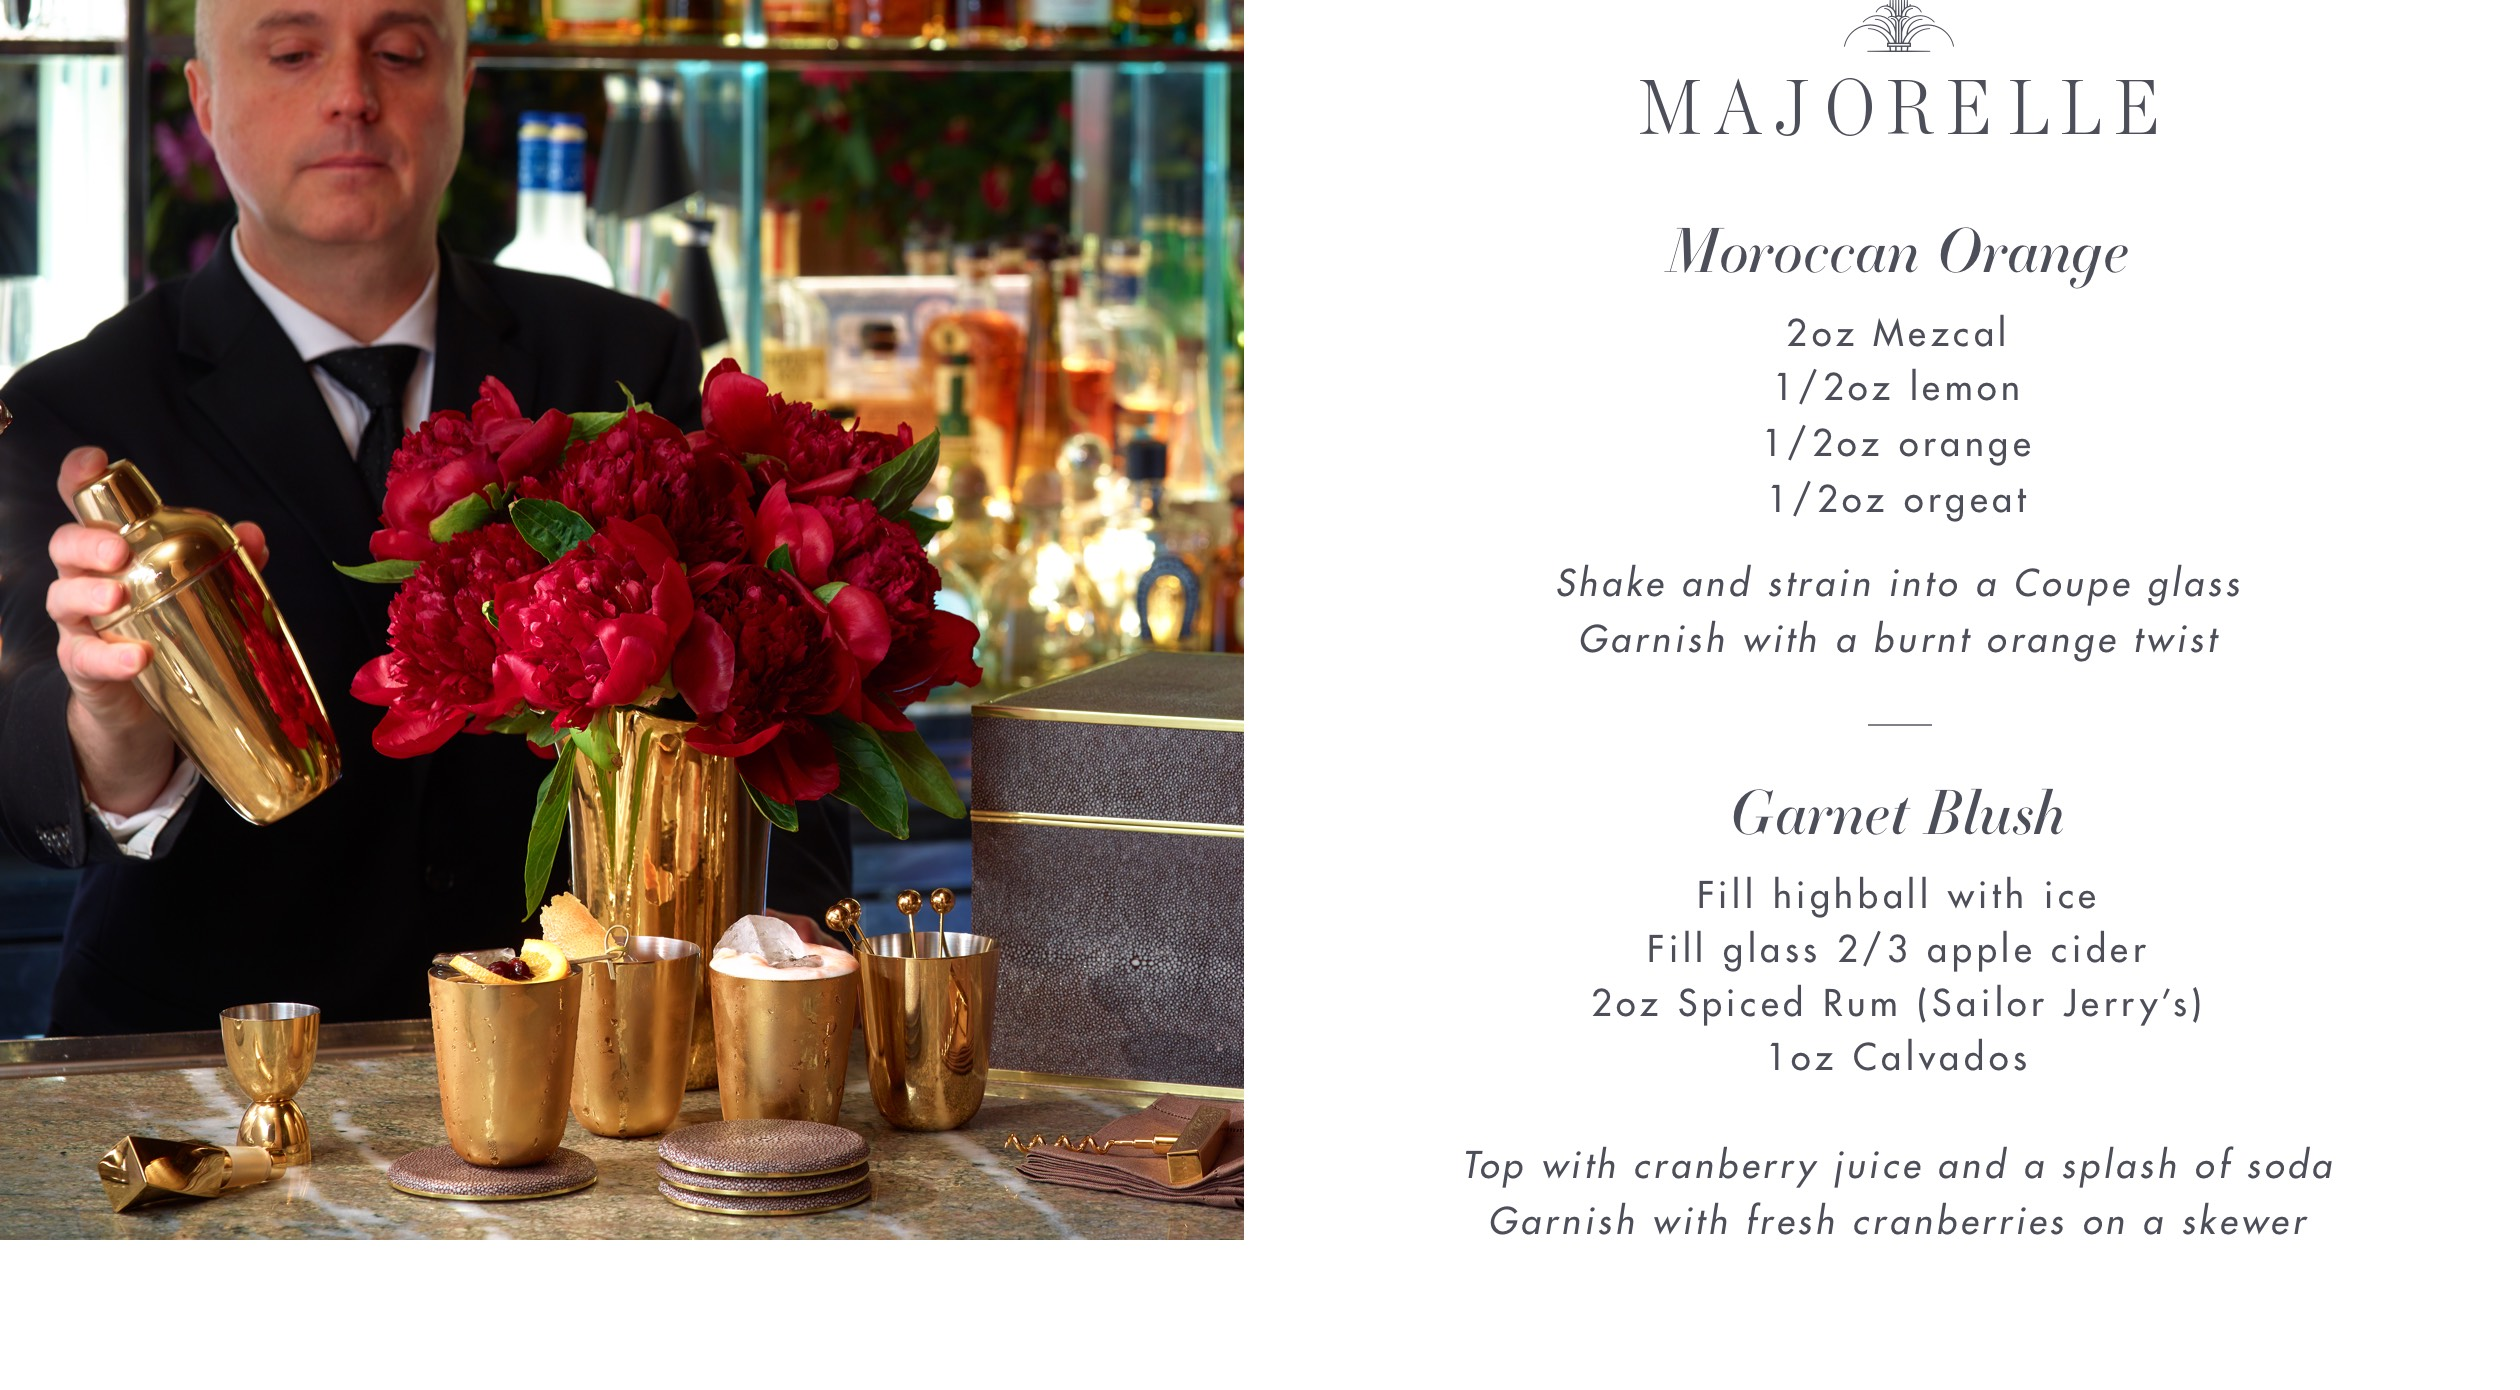 Majorelle Cocktail Recipe